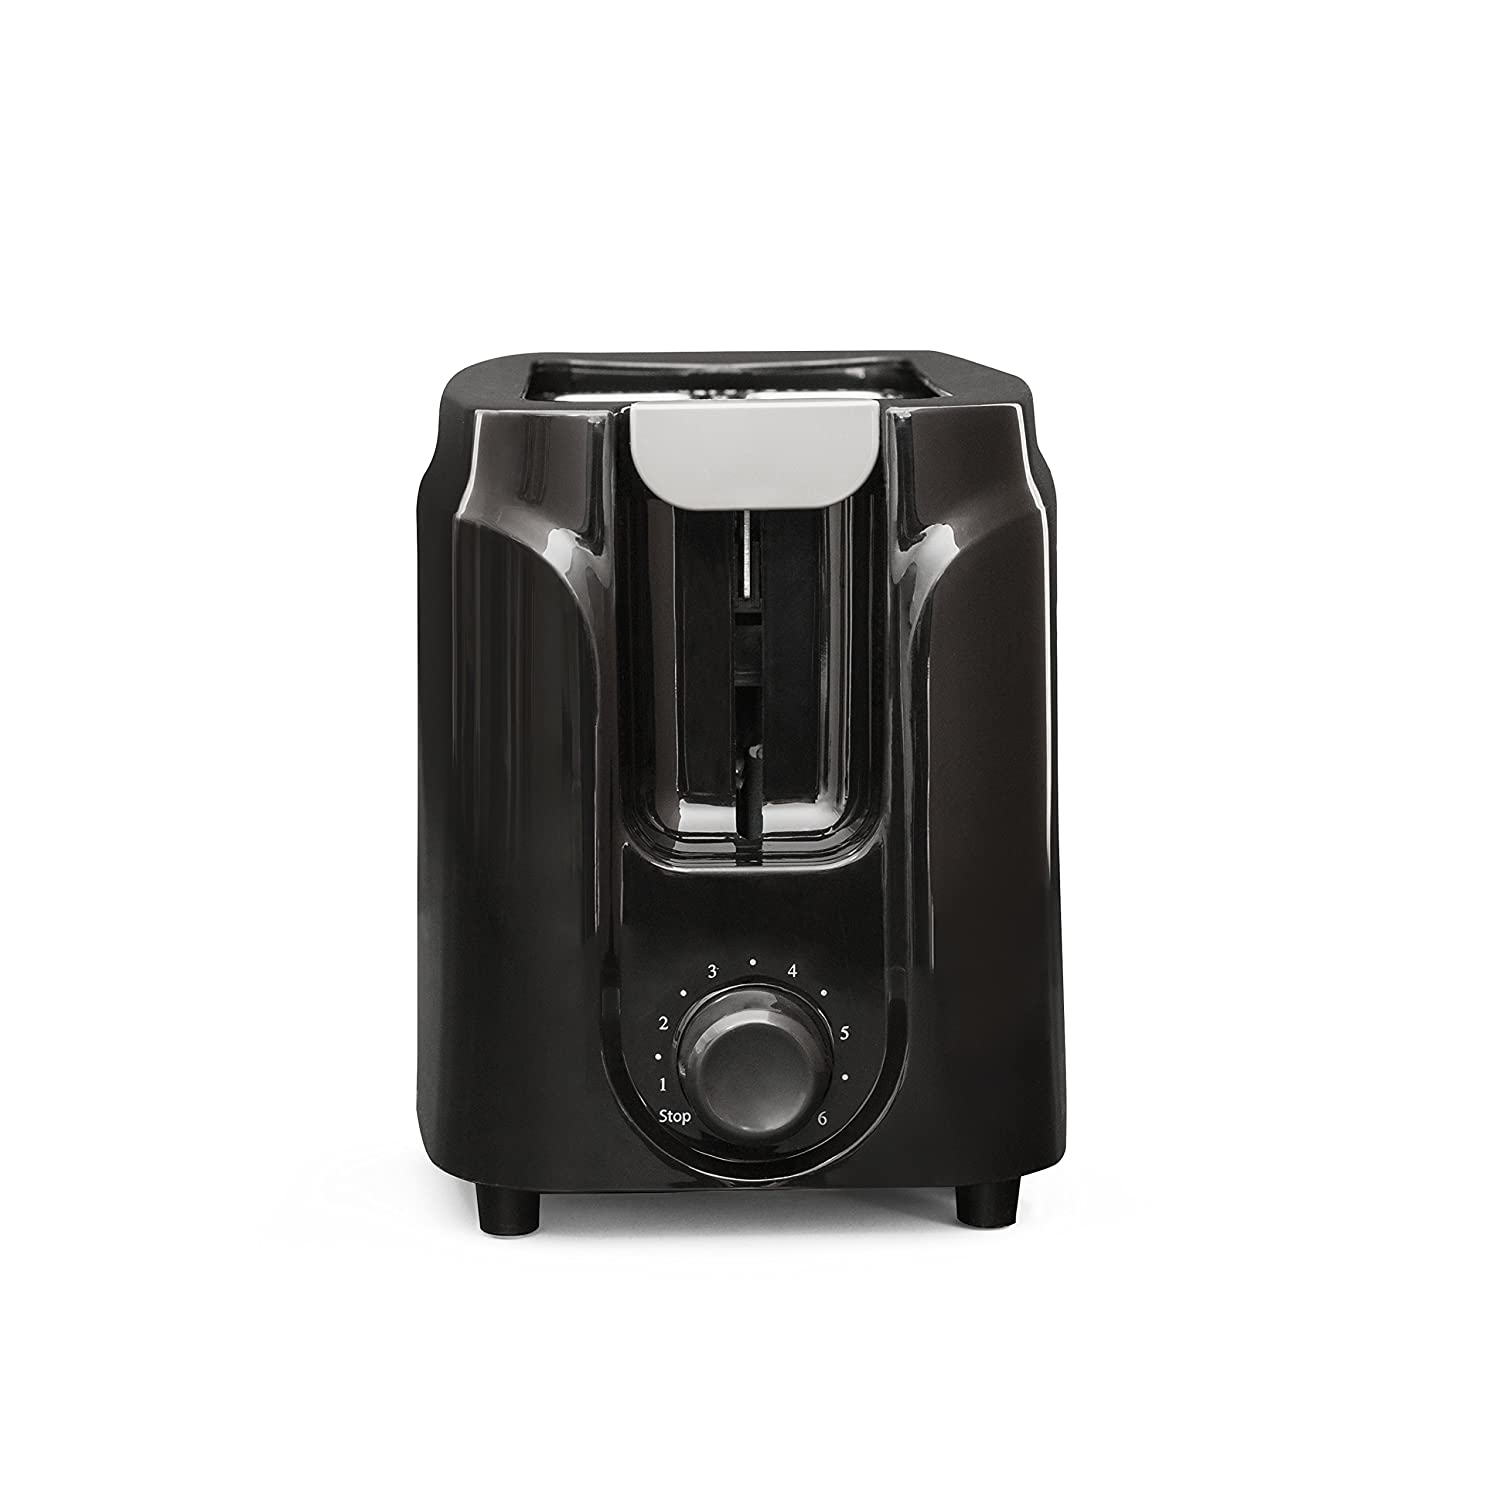 Mainstays 2-Slice Toaster, Black, Auto-centering guides